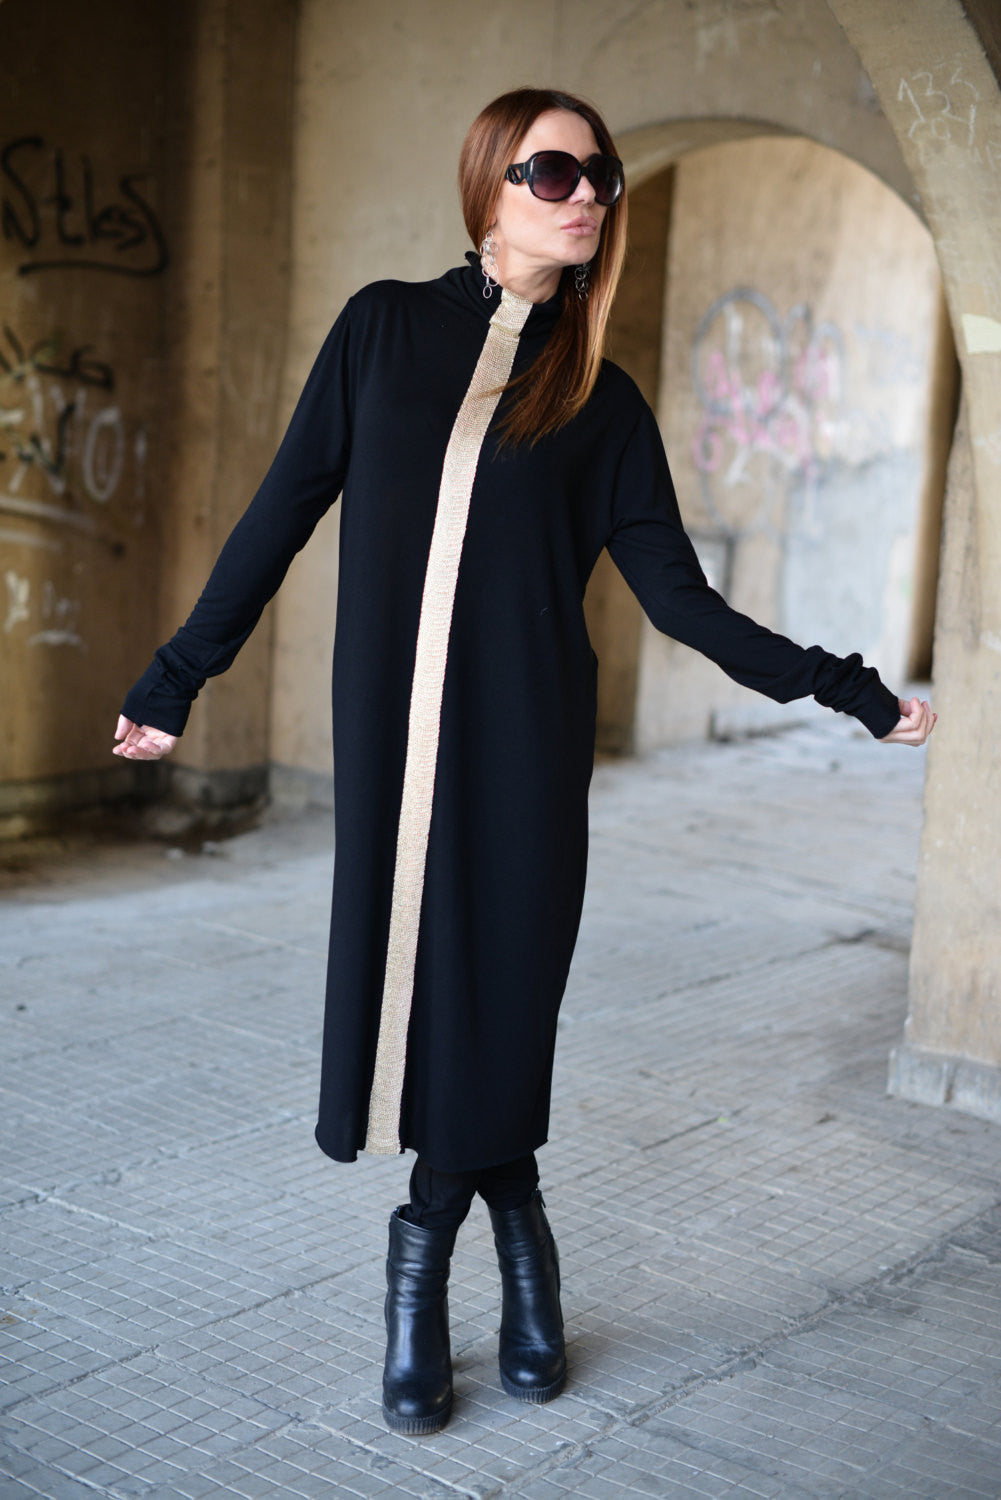 Women SET composed of Knit Dress with Knit Leggings